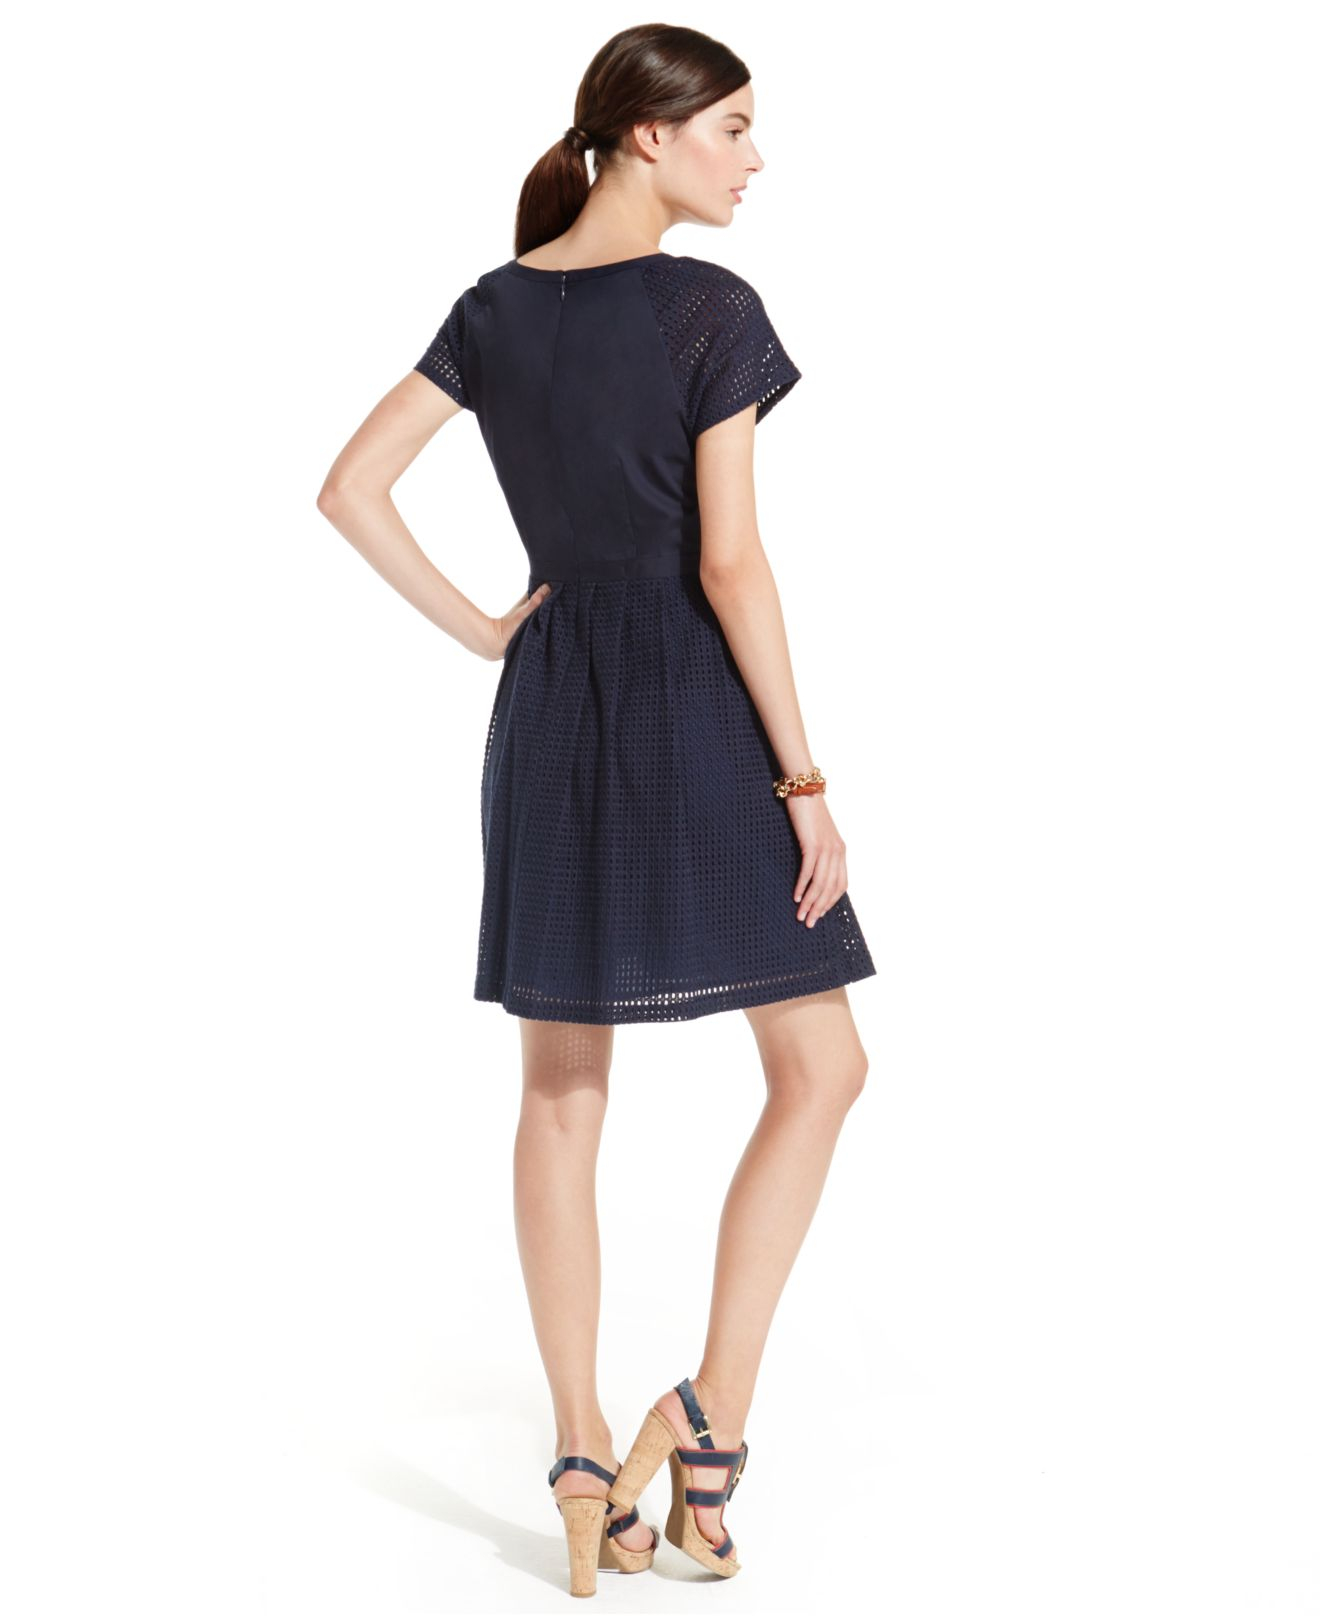 34a6ec5400 Tommy Hilfiger Pleated Eyelet Fit & Flare Dress in Blue - Lyst